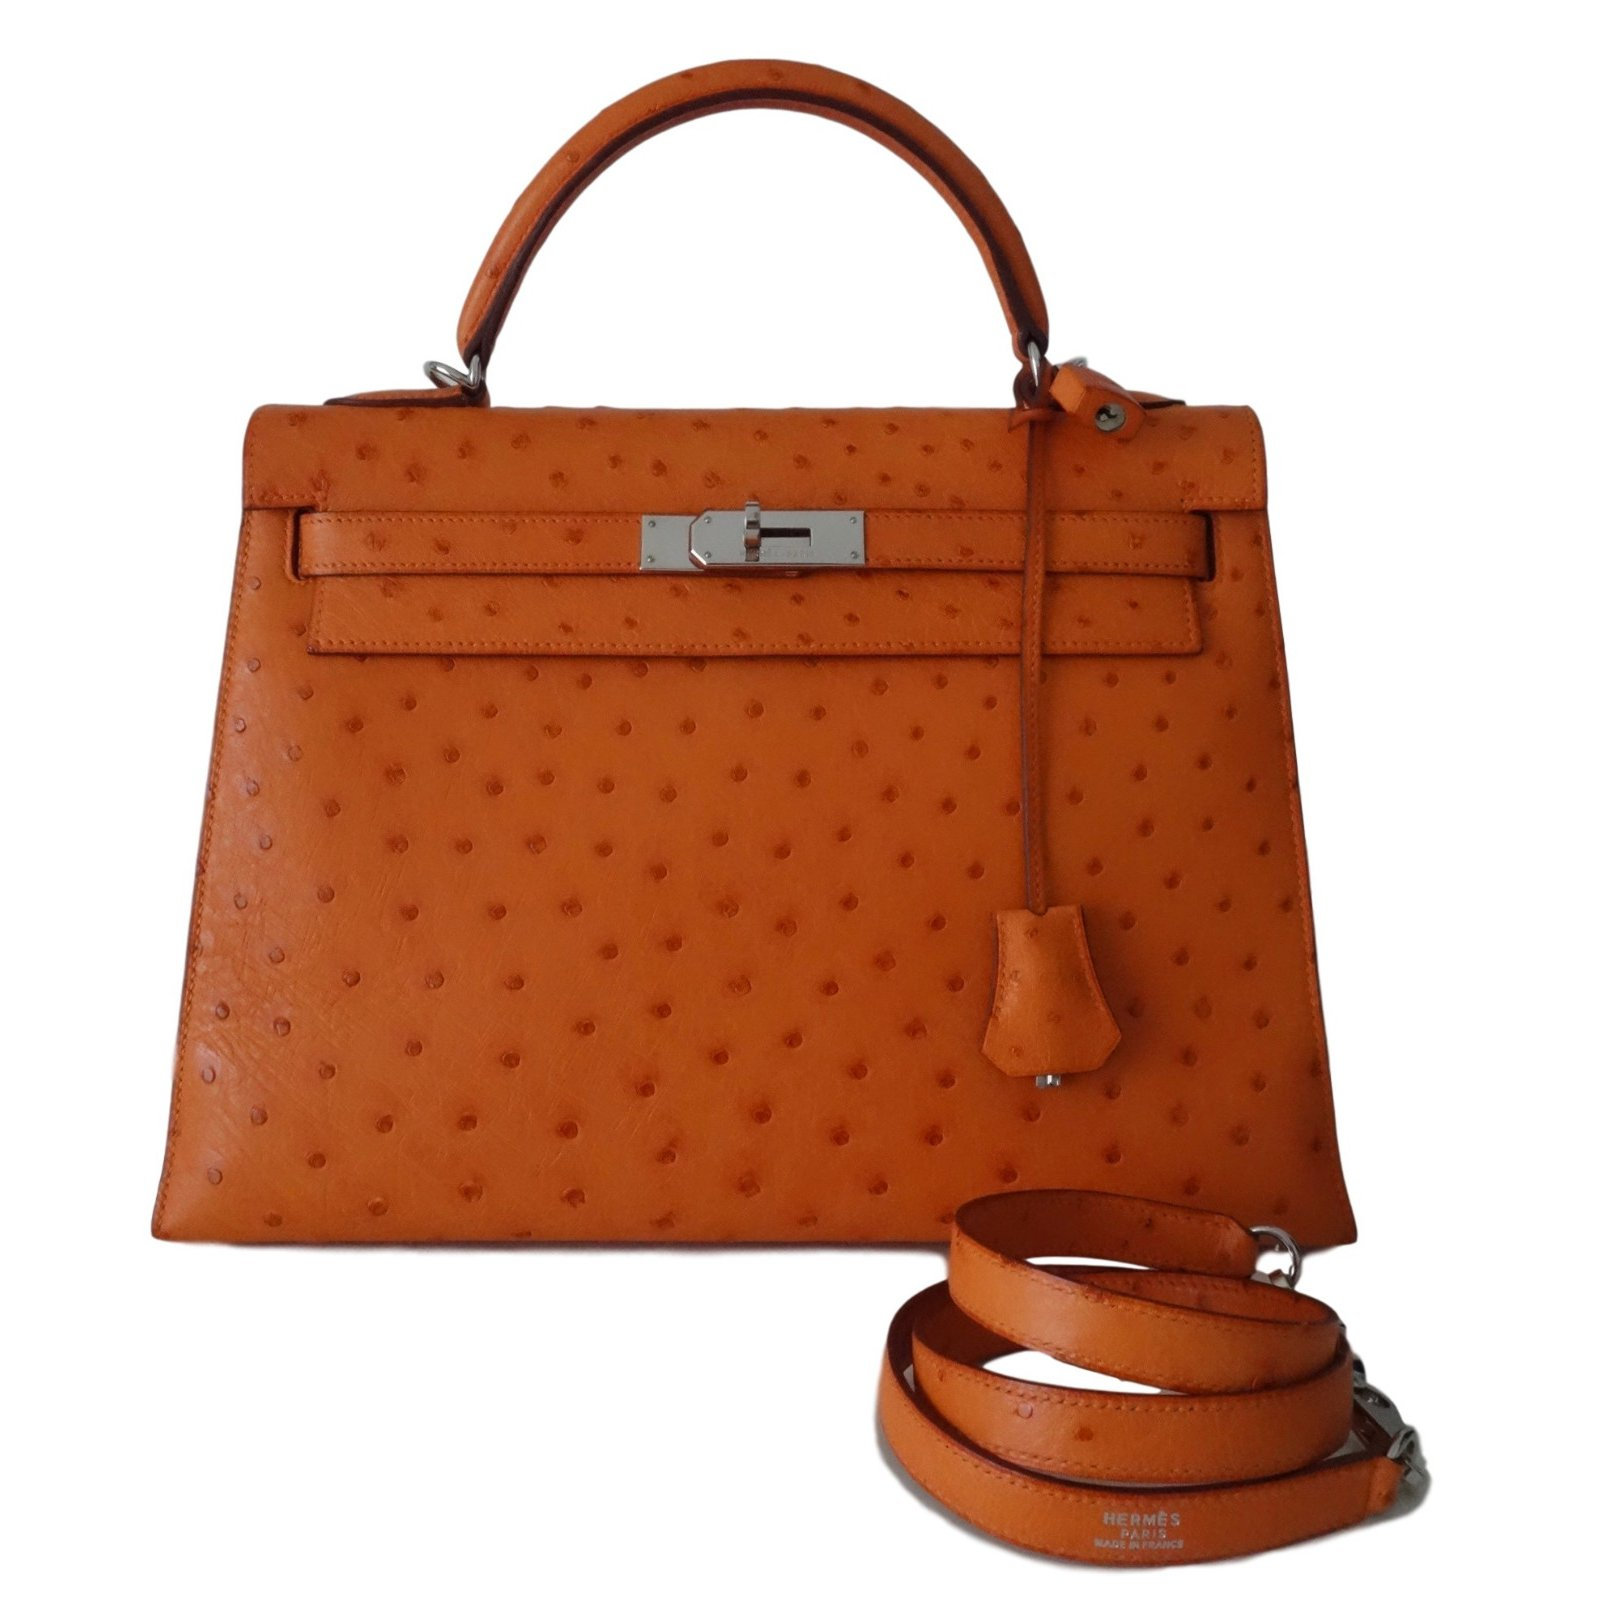 SAC HERMES KELLY 32 AUTRUCHE ORANGE